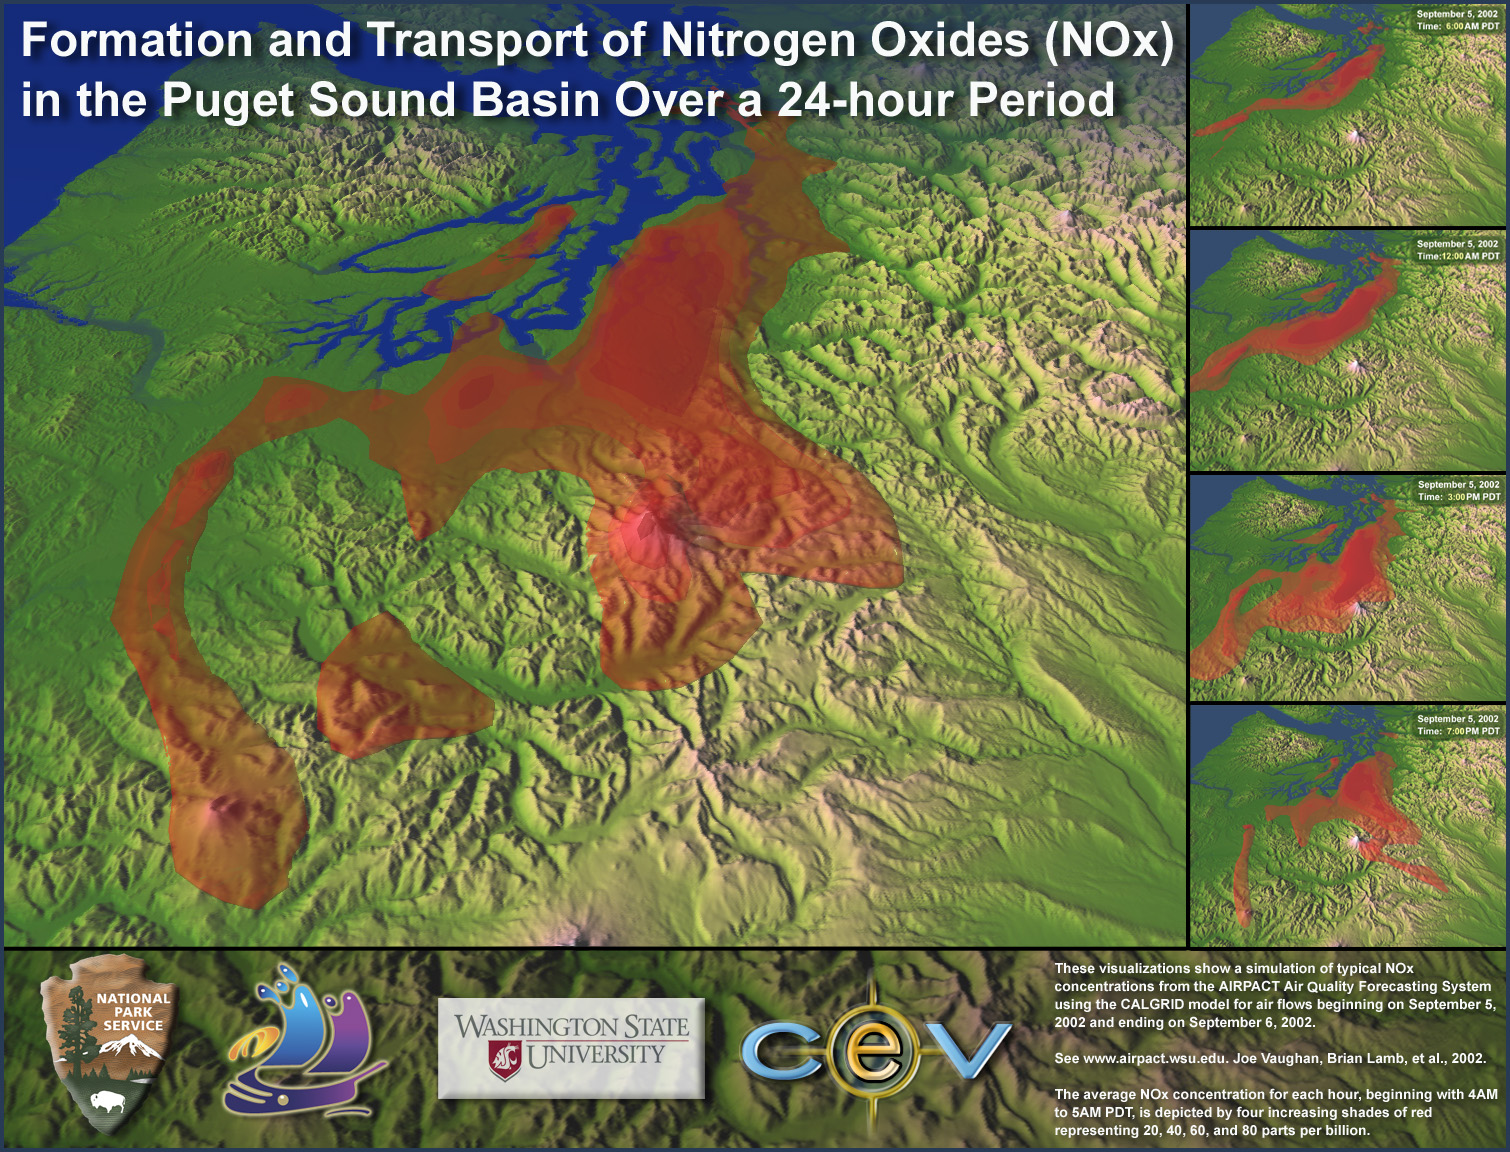 Formation and transport of Nitrogen Oxides